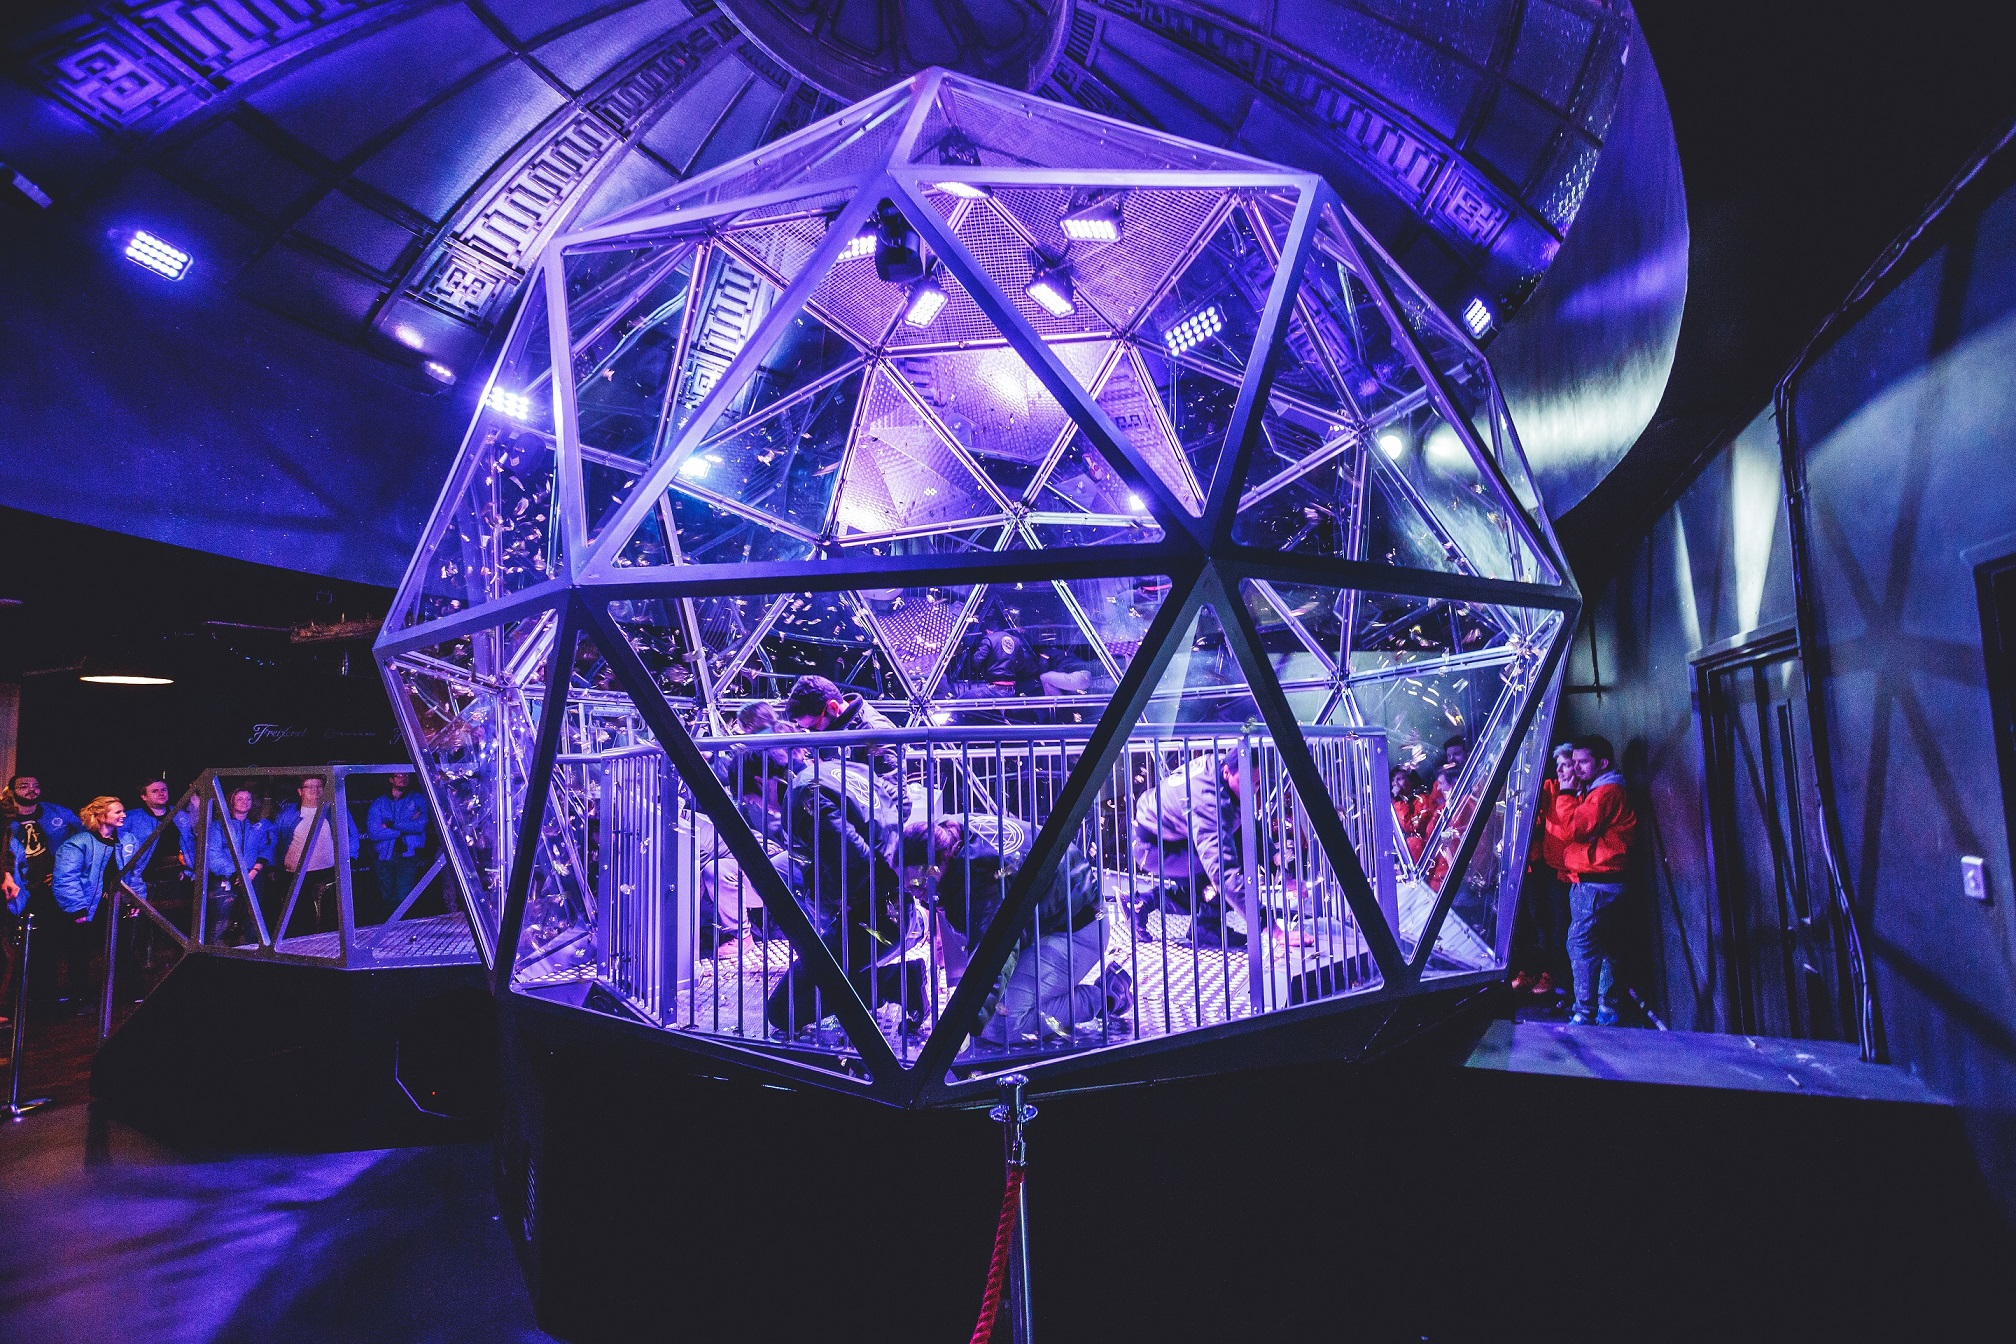 The celebrity players have been confirmed for The Crystal Maze's big return episode